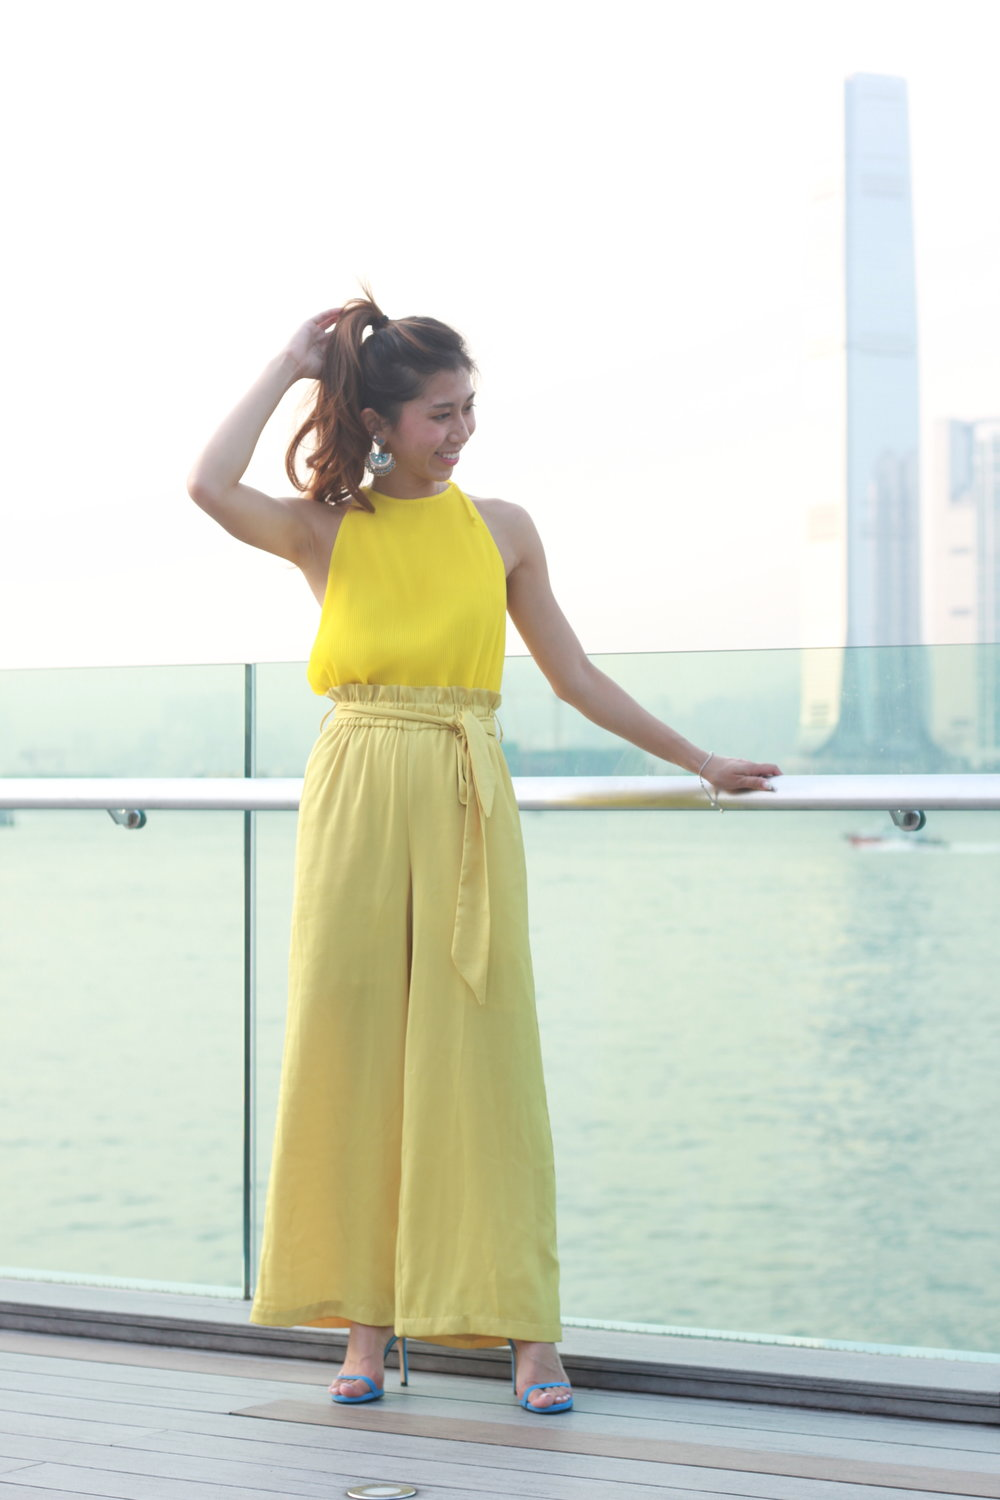 Mango pleated dress  / Mango yellow wide pants /  Stuart Weitzman 'nudist song' colourblock suede sandals